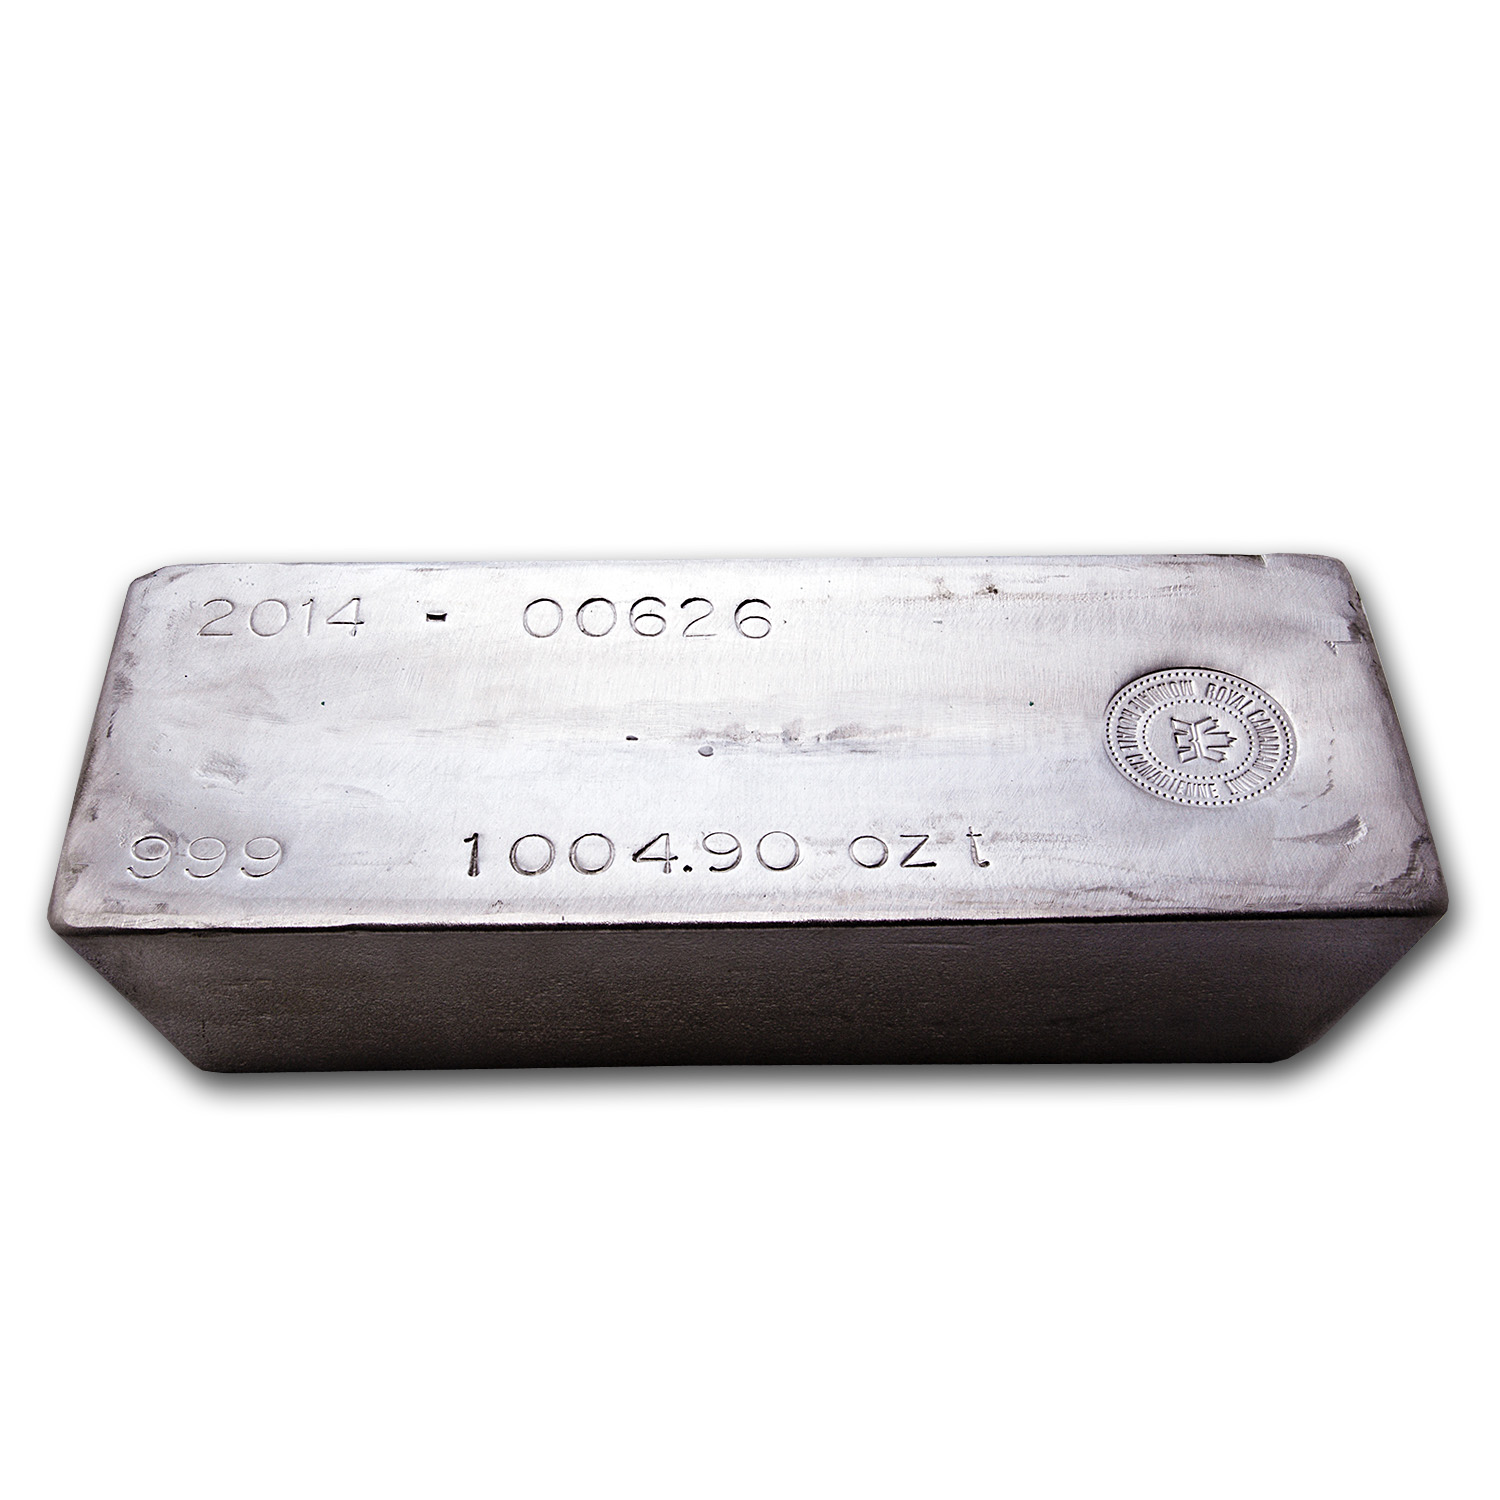 988.60 oz Silver Bars - Royal Canadian Mint (COMEX Deliverable)